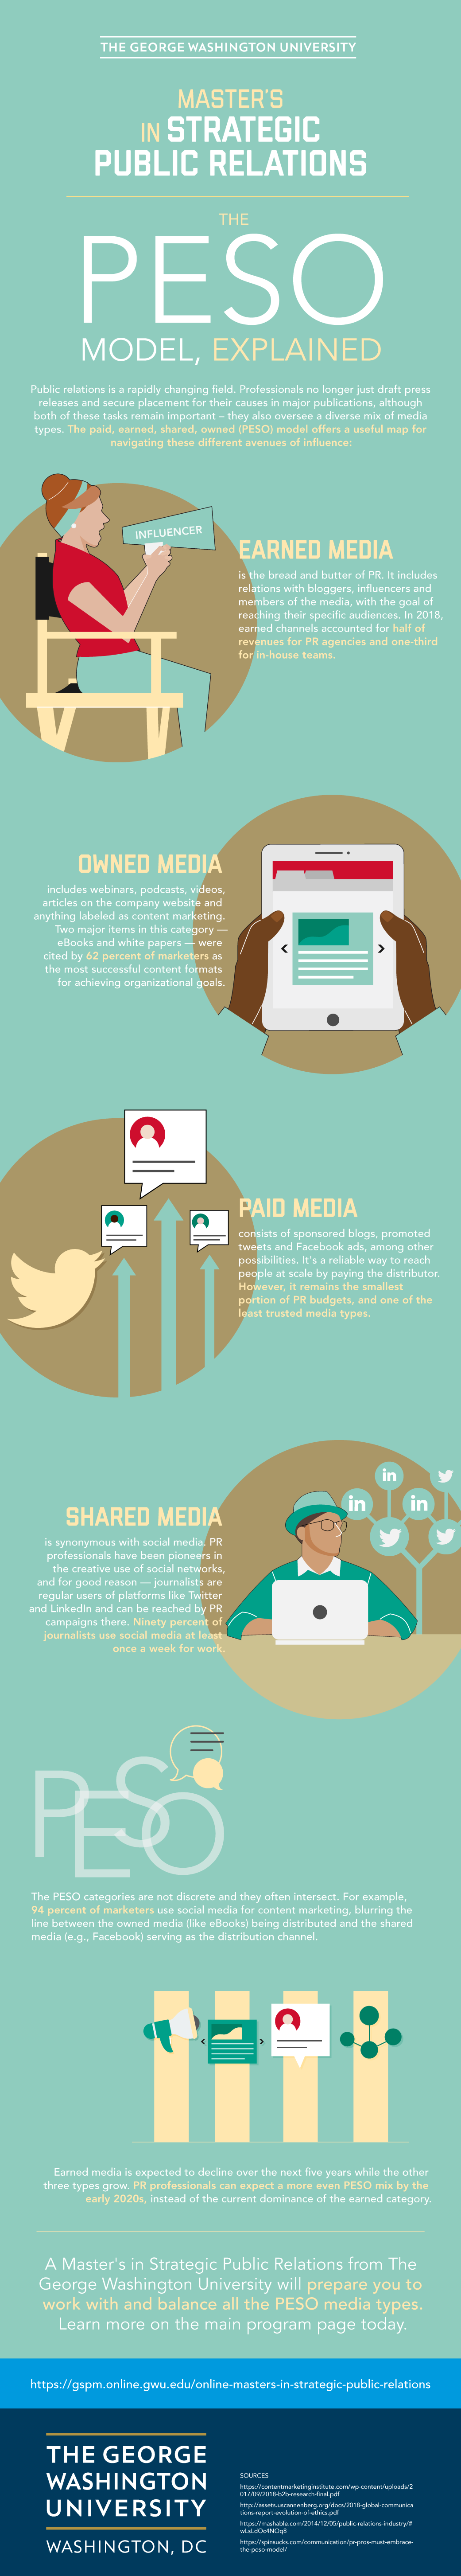 Infographic: Why PR professionals should adopt the PESO Model